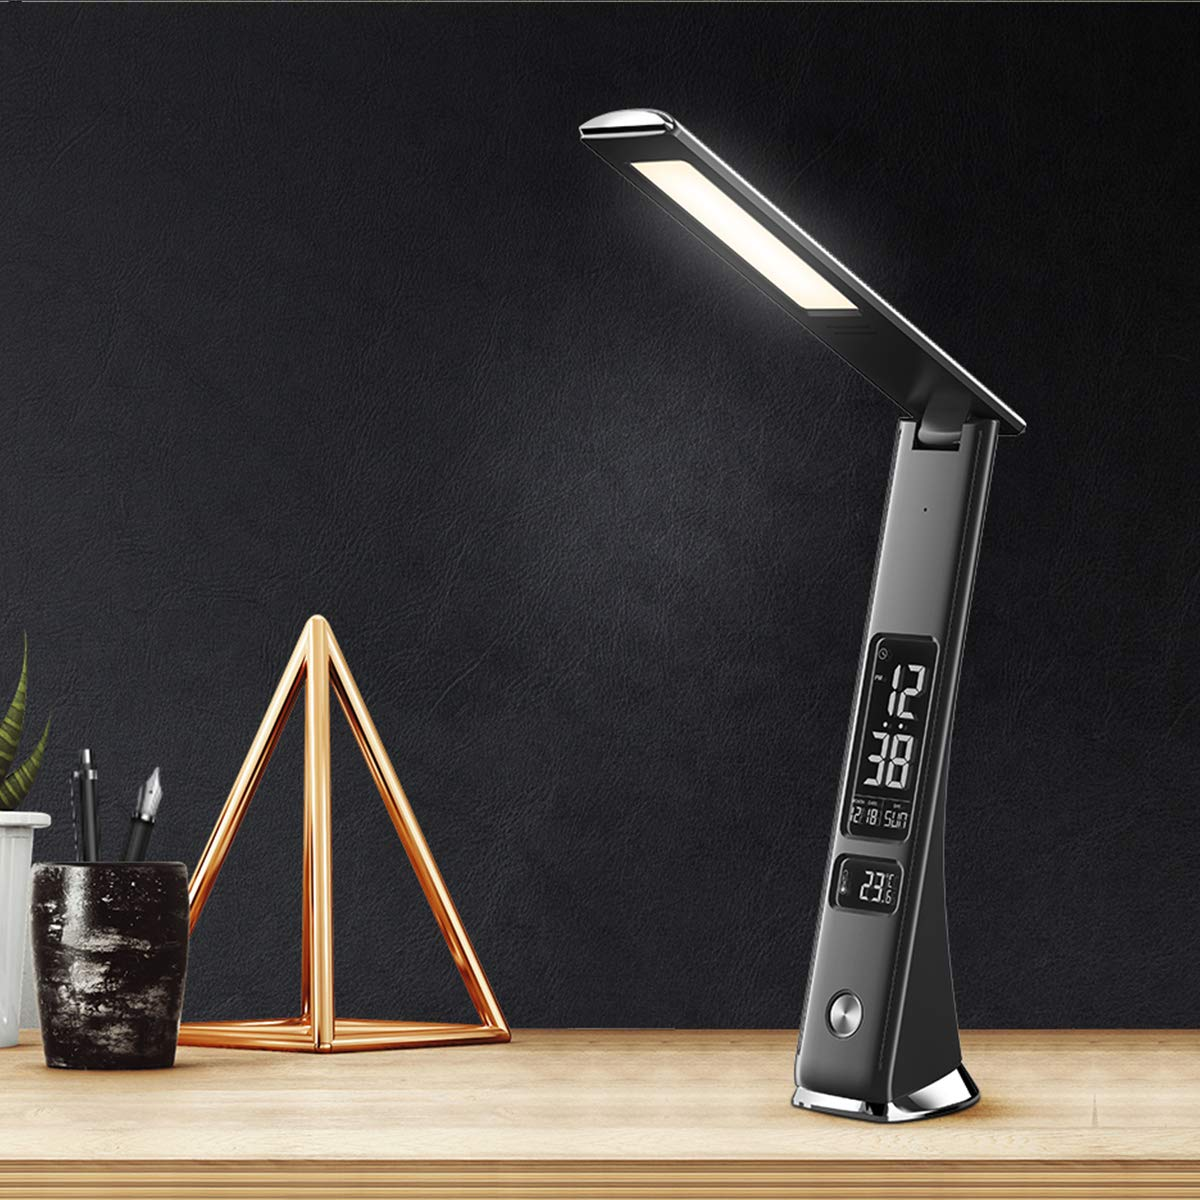 Led Desk Lamp available on amazon